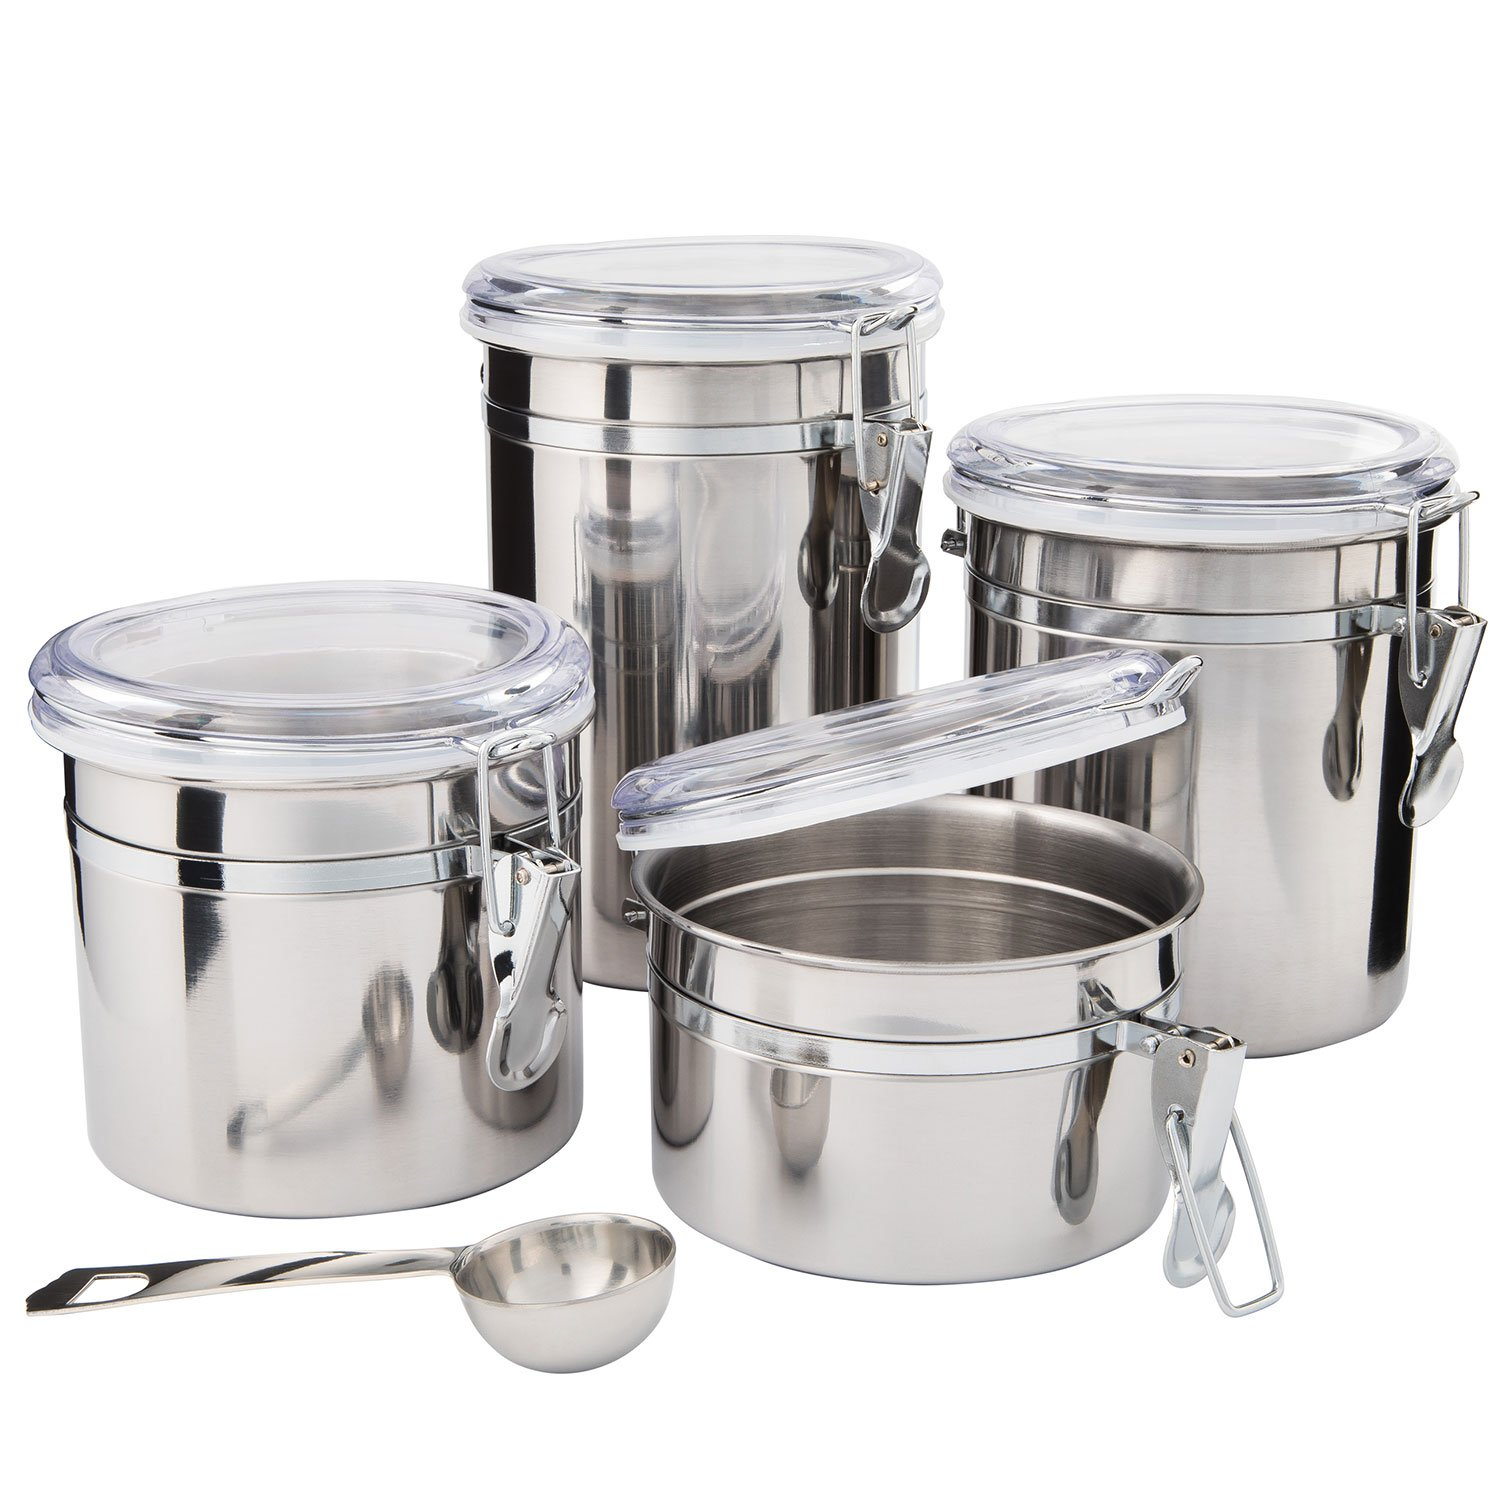 cheap kitchen canister sets cheap kitchen canister sets black find kitchen canister sets black deals on line at alibaba com 653